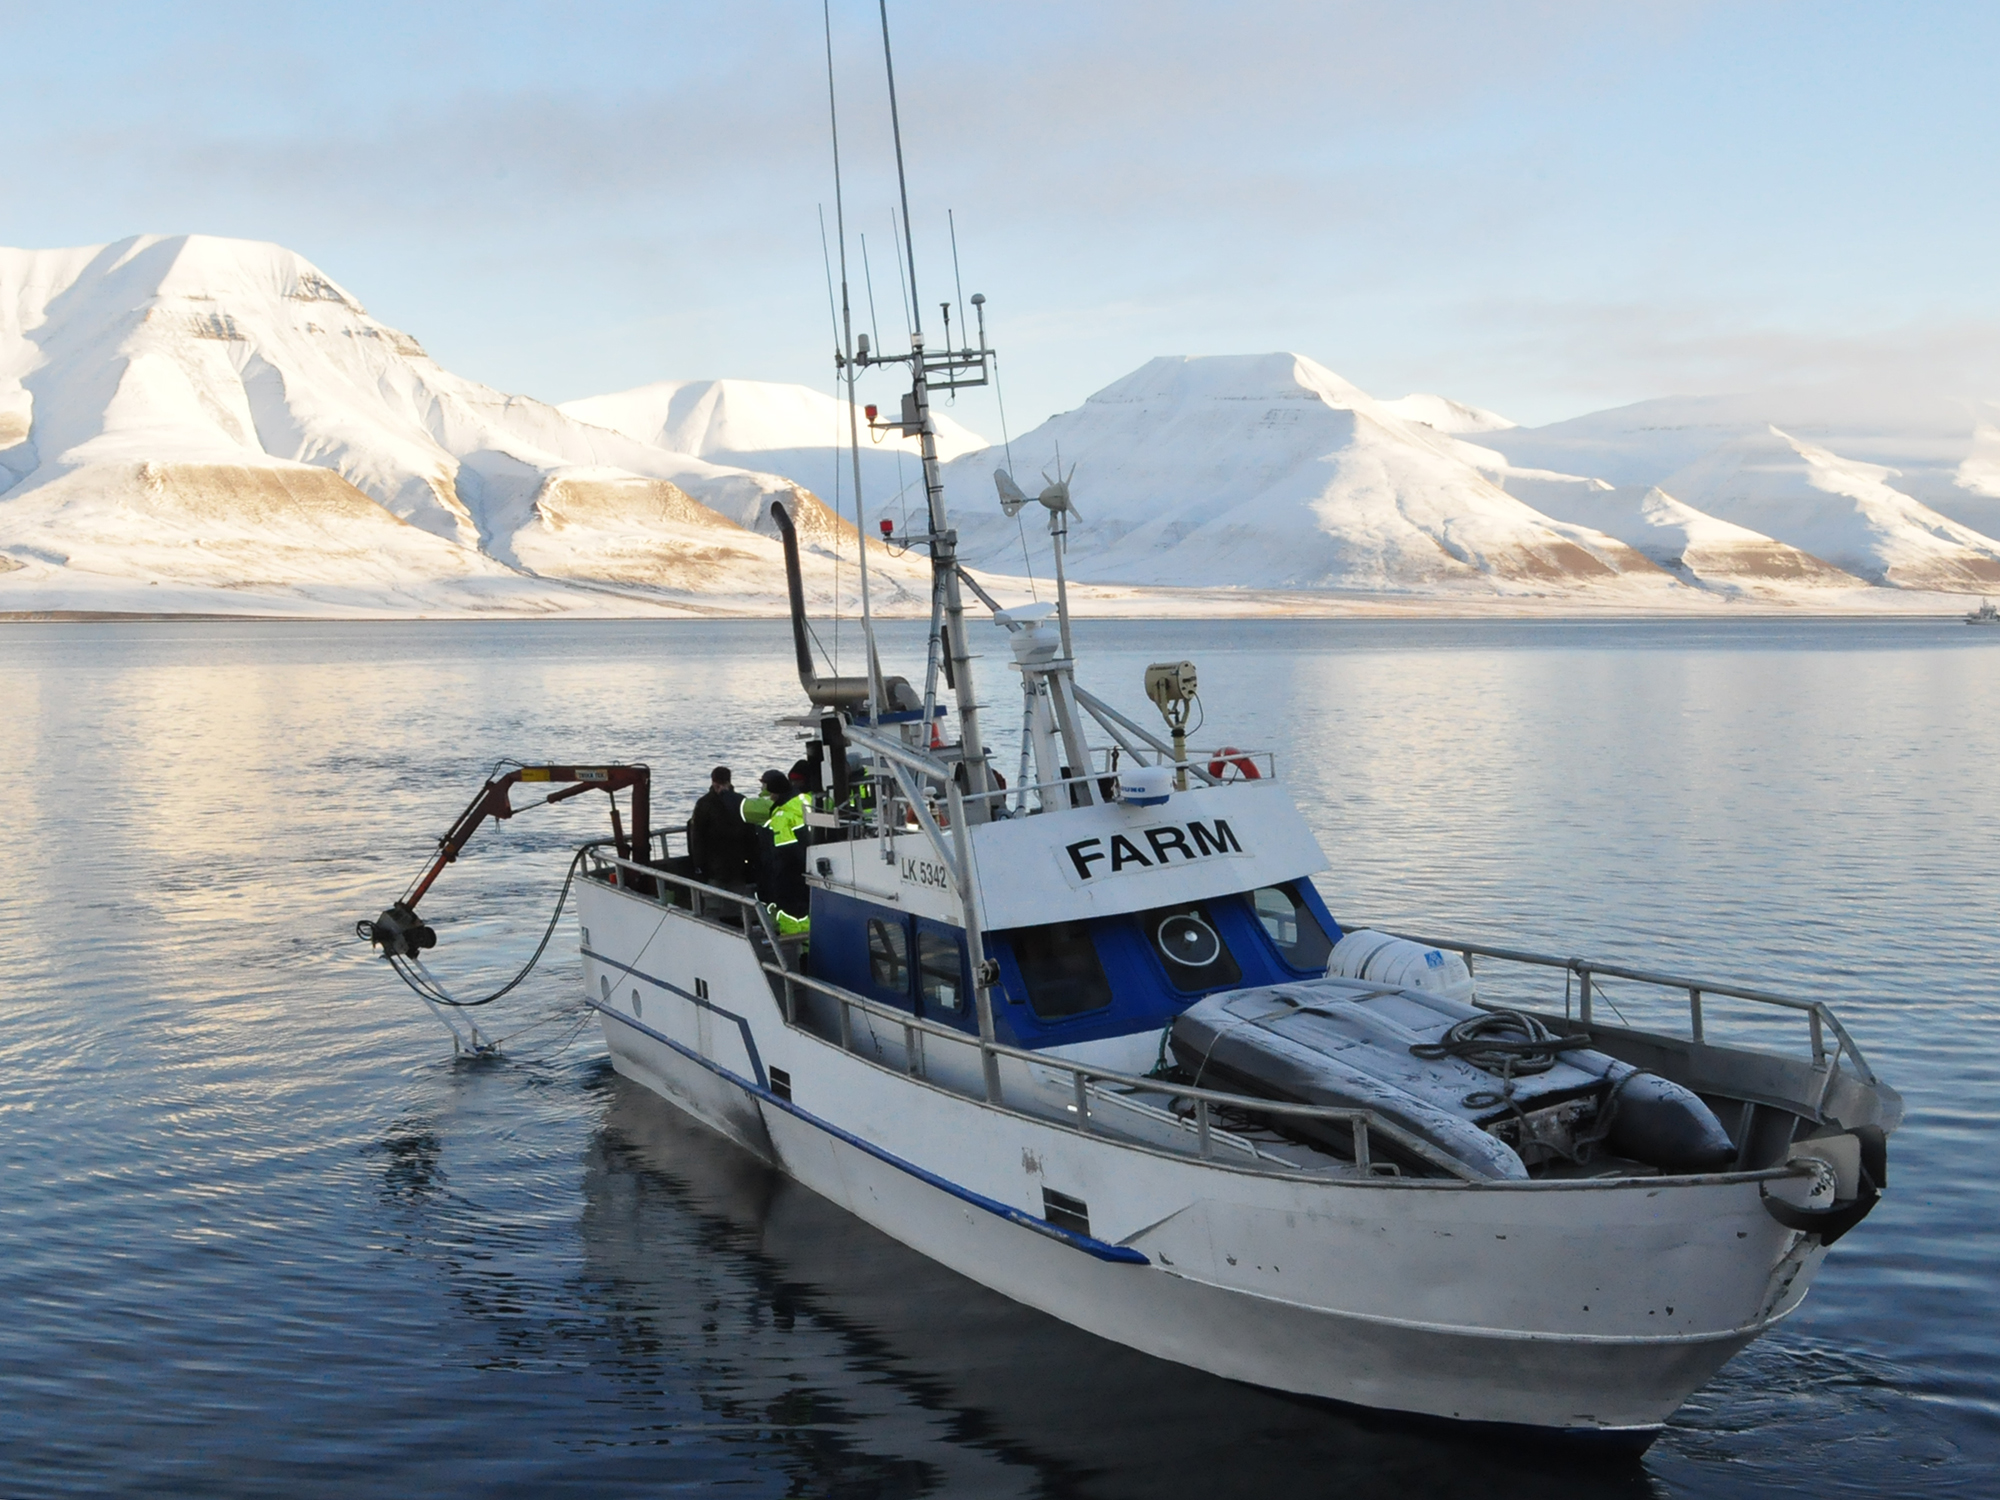 MS Farm doing scientific measurements in Isfjorden, Svalbard.